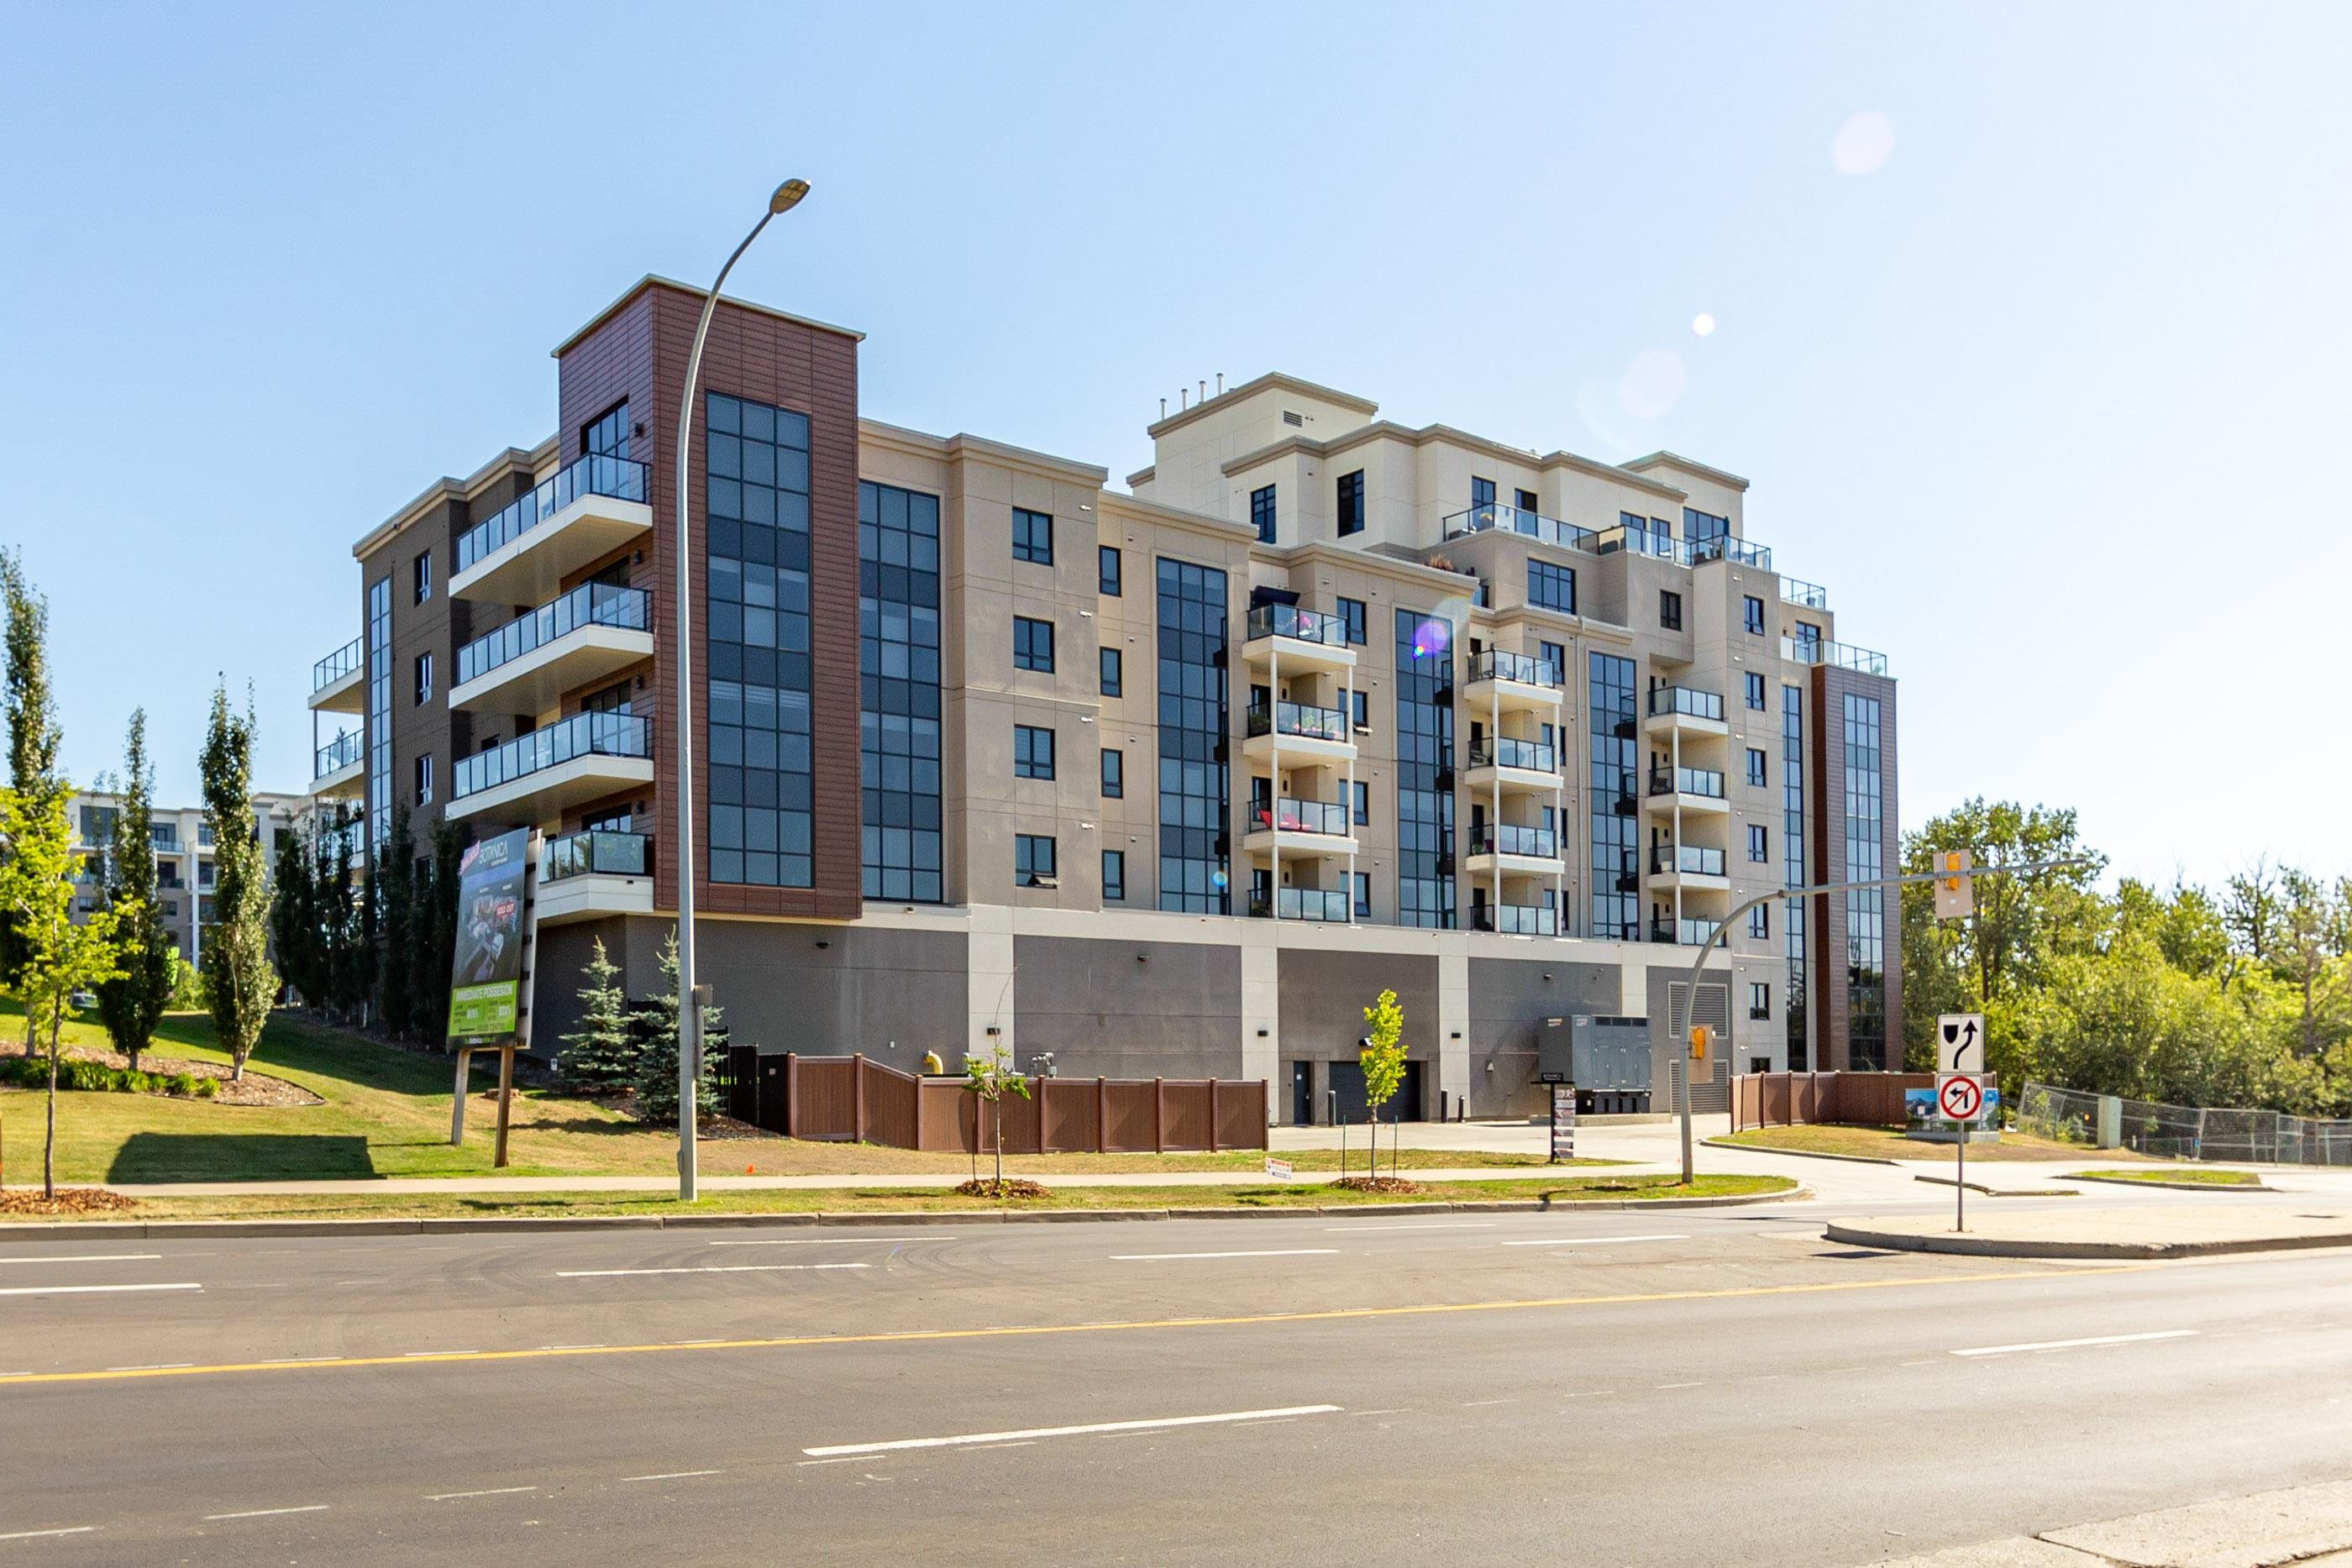 Welcome to beautiful Botanica! Expect to be impressed upon entering this luxurious unit. From the high end kitchen, upgraded lighting, engineered hardwood flooring, custom window blinds,  bbq gas line on patio, cozy living room with tiled electric fireplace feature wall.  The primary suite features a large walk in closet and an upgraded spa like 5 piece ensuite with soaker tub. The second bedroom is a great size with a 3 piece main bathroom. You have your own separate laundry room with stackable washer and dryer and storage space. Title parking stall in underground heated parkade with storage locker. The building provides a high end fitness center, guest suite, luxurious social room, 4000sf rooftop garden terrace. All of this along with being in walking distance to the Sturgeon river, Red Willow Park, The Italian Market, and other convenient amenities. You won't be disappointed!